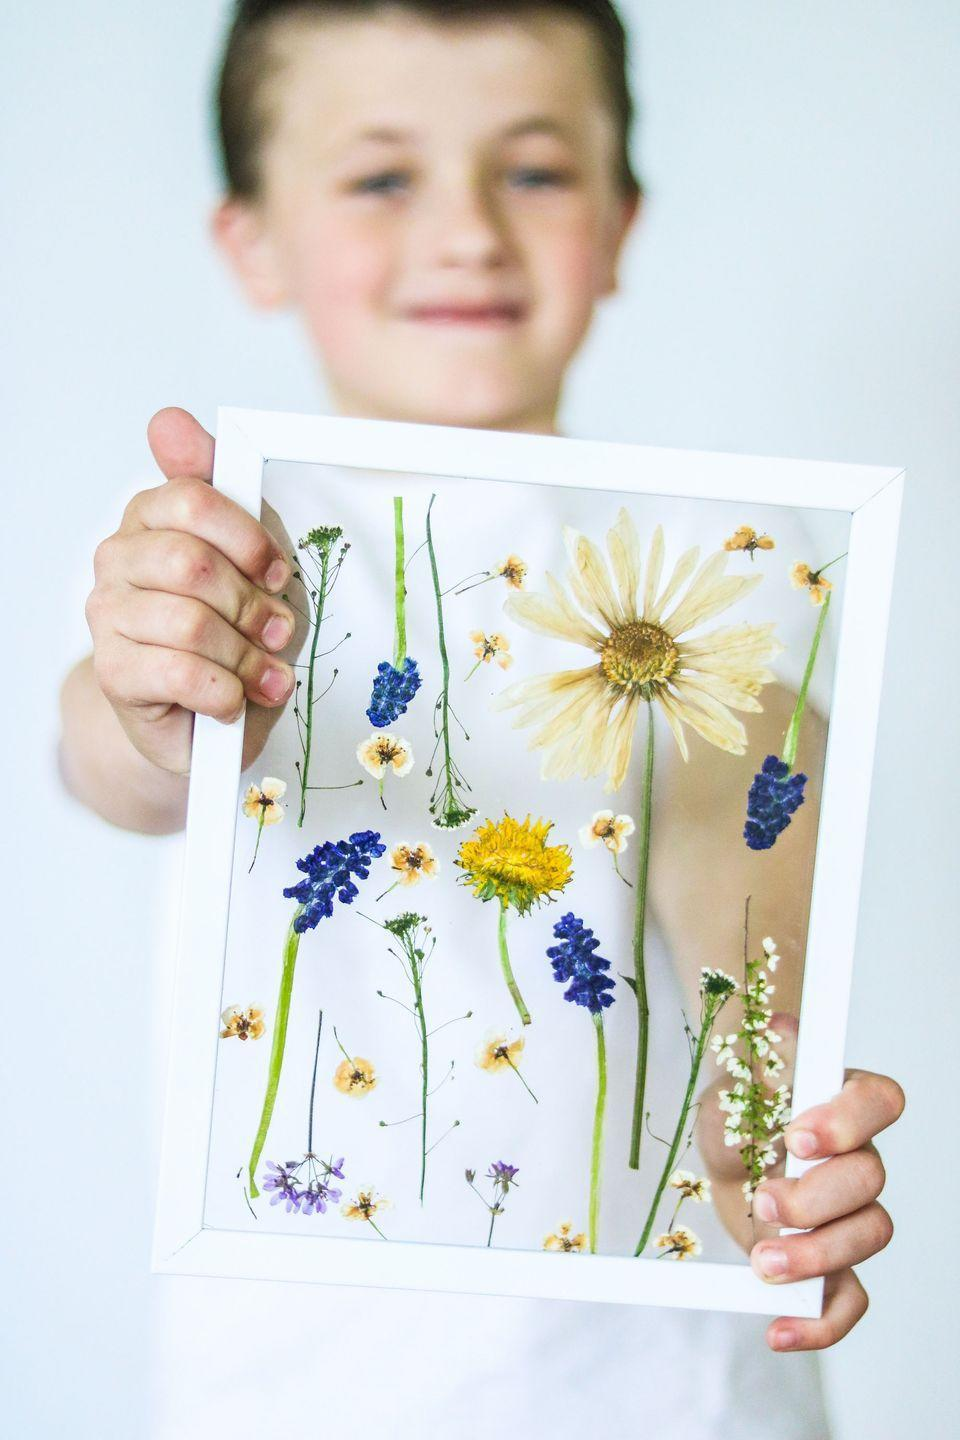 """<p>Flatten real flowers—or even weeds!—from your garden to make a one-of-a-kind Mother's Day craft. It will look especially beautiful hanging near a window with the sunlight shining through.</p><p><strong>Get the tutorial at <a href=""""https://www.lilyardor.com/how-to-press-flowers-quick/"""" rel=""""nofollow noopener"""" target=""""_blank"""" data-ylk=""""slk:Lily Ardor"""" class=""""link rapid-noclick-resp"""">Lily Ardor</a>.</strong><br></p><p><strong>What you'll need: </strong><em>cotton fabric ($3 per yard <a href=""""https://www.amazon.com/Muslin-Fabric-Natural-Cotton-Inches/dp/B01AVOIB14"""" rel=""""nofollow noopener"""" target=""""_blank"""" data-ylk=""""slk:amazon.com"""" class=""""link rapid-noclick-resp"""">amazon.com</a>); white picture frame ($8, <a href=""""https://www.amazon.com/RPJC-Picture-Definition-Display-mounting/dp/B06Y2HNDXQ"""" rel=""""nofollow noopener"""" target=""""_blank"""" data-ylk=""""slk:amazon.com"""" class=""""link rapid-noclick-resp"""">amazon.com</a>)</em></p>"""